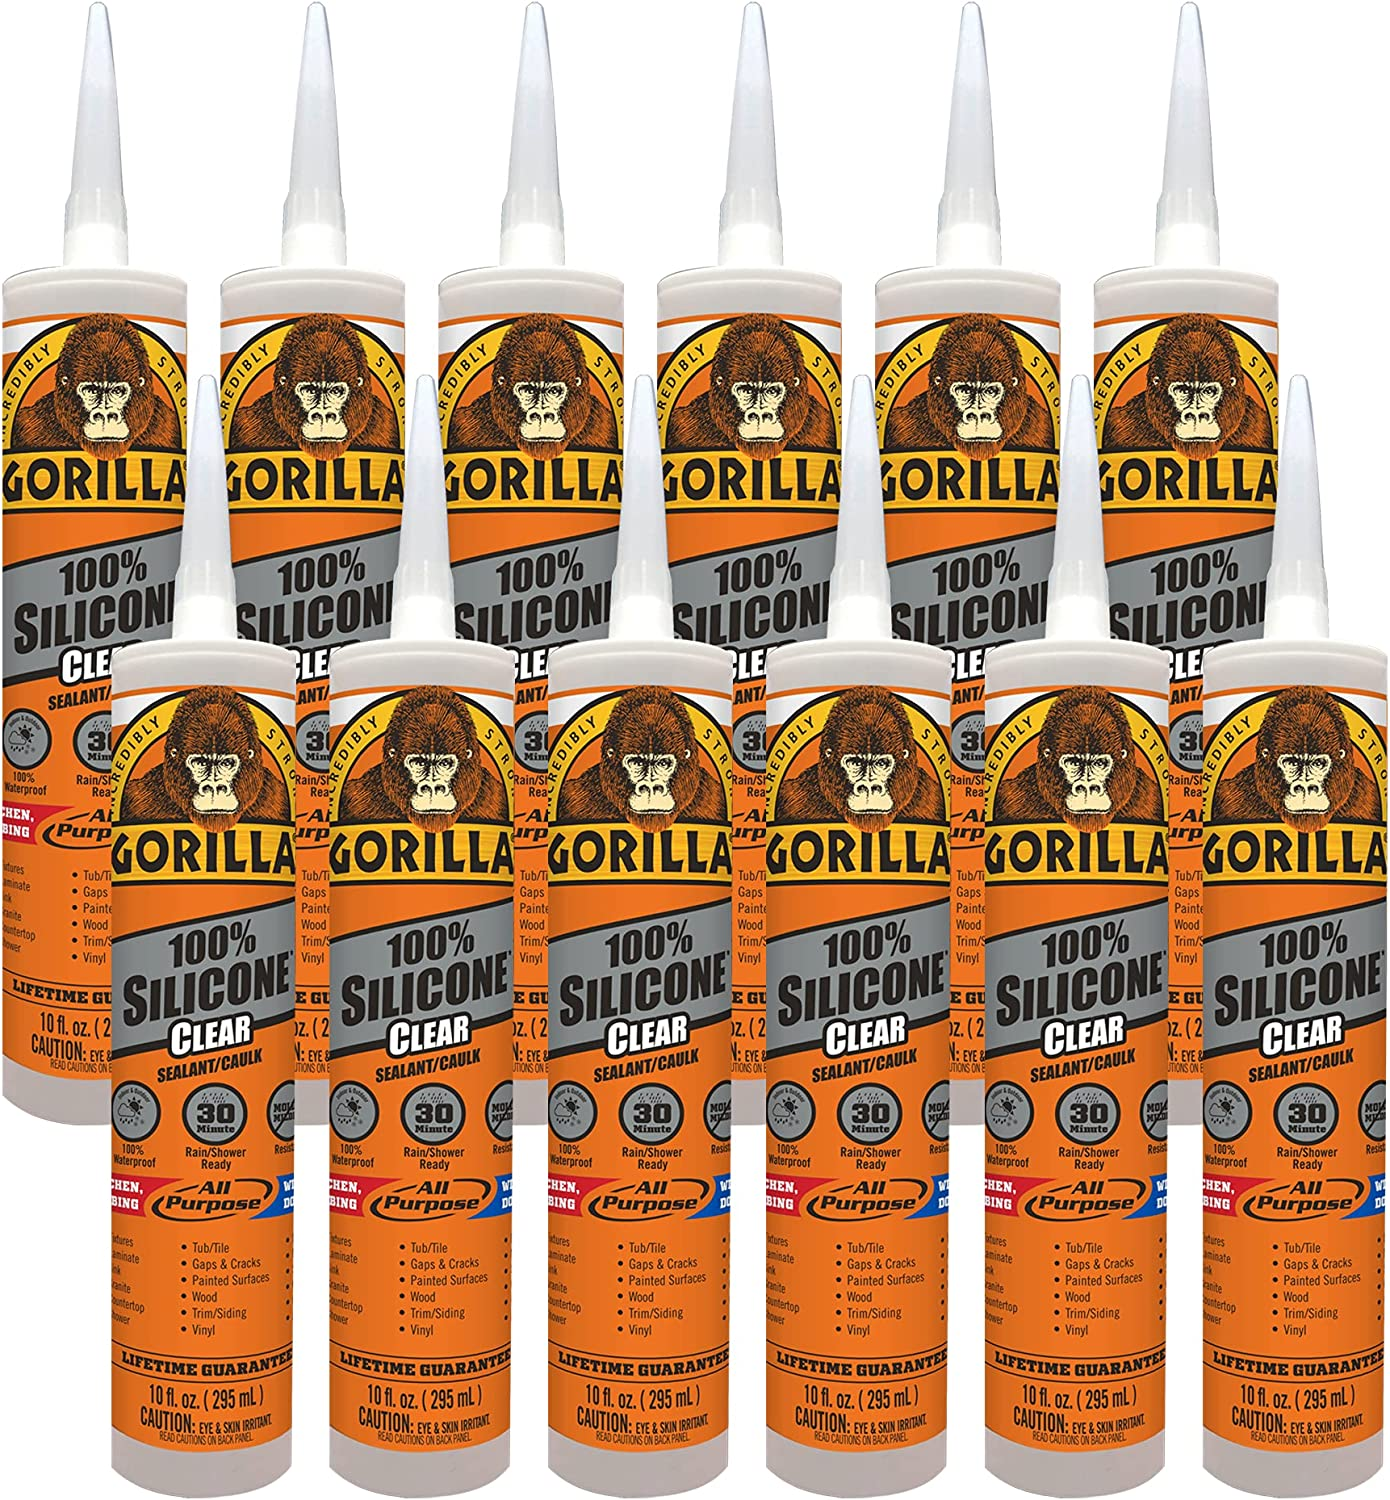 Gorilla 8050002DF12 10 Ounce Cartridge 1 Max 43% famous OFF Sealant Silicone Clear